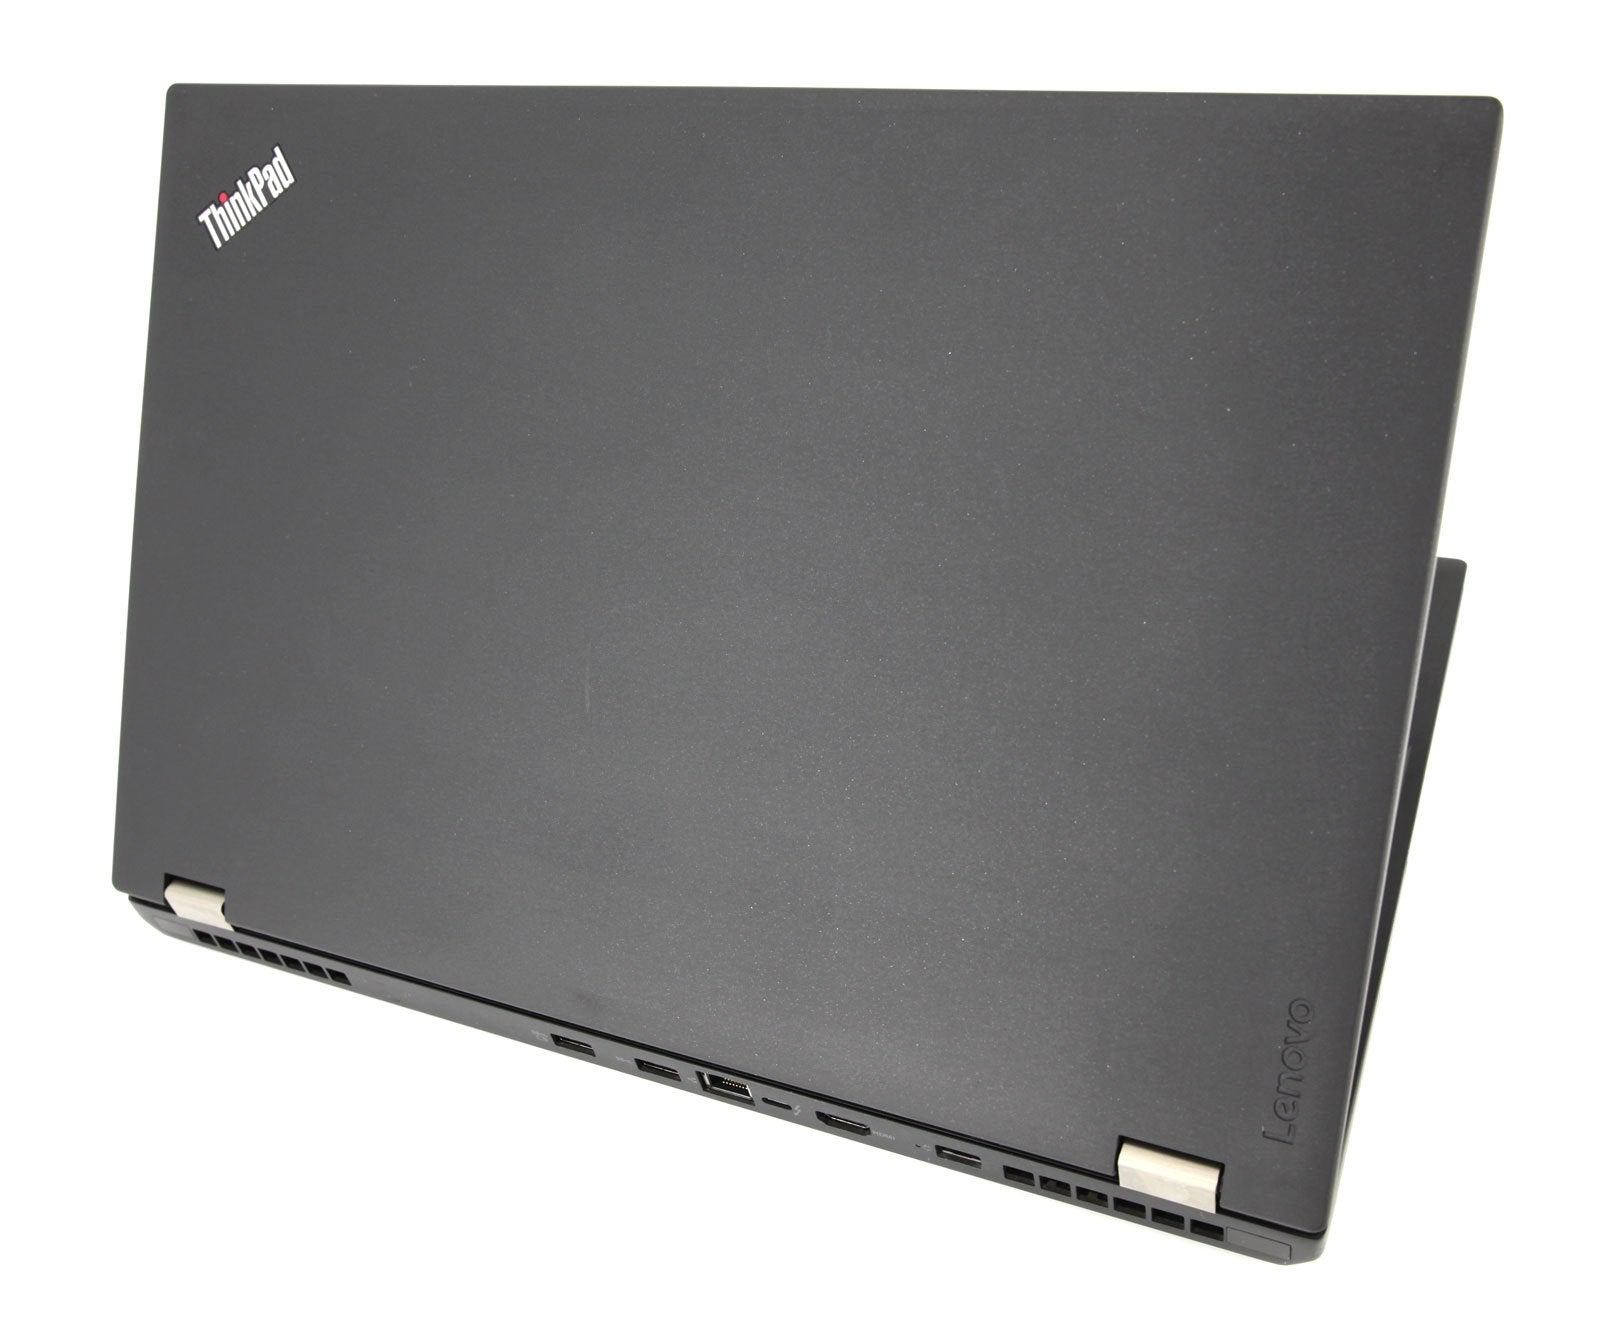 Lenovo Thinkpad P50 15.6